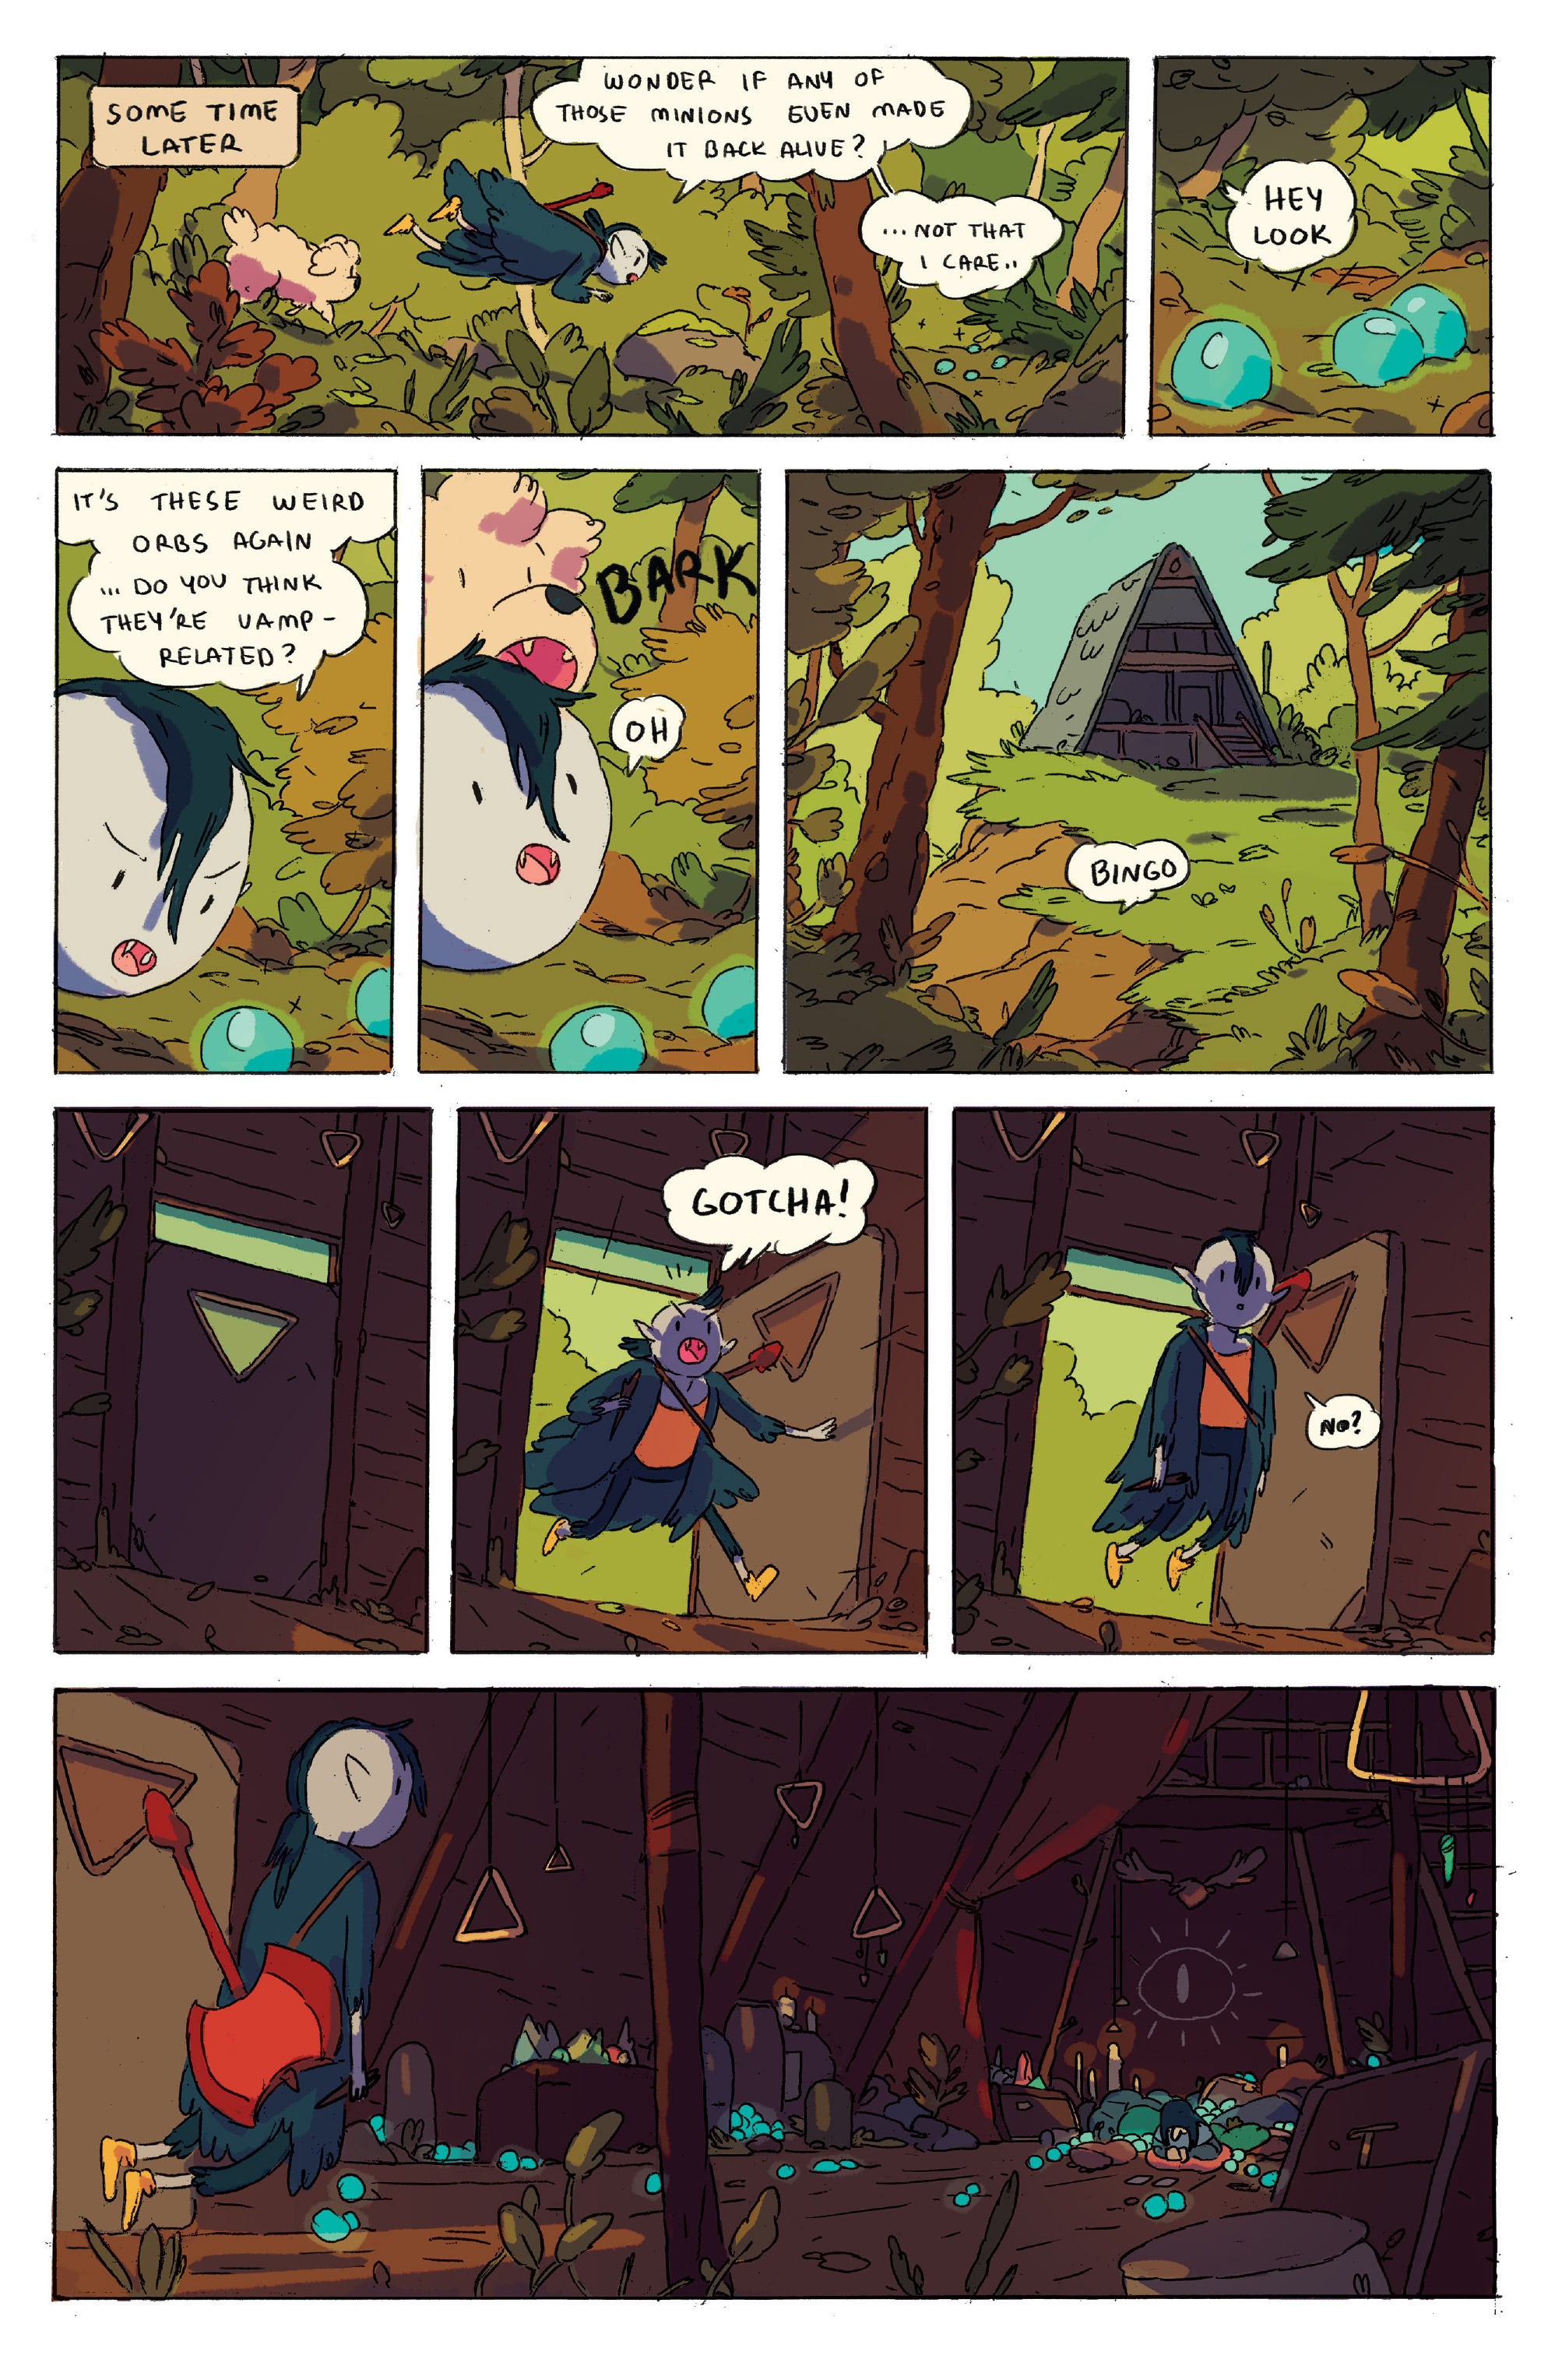 Read online Adventure Time comic -  Issue # _2015 Spoooktacular - 23